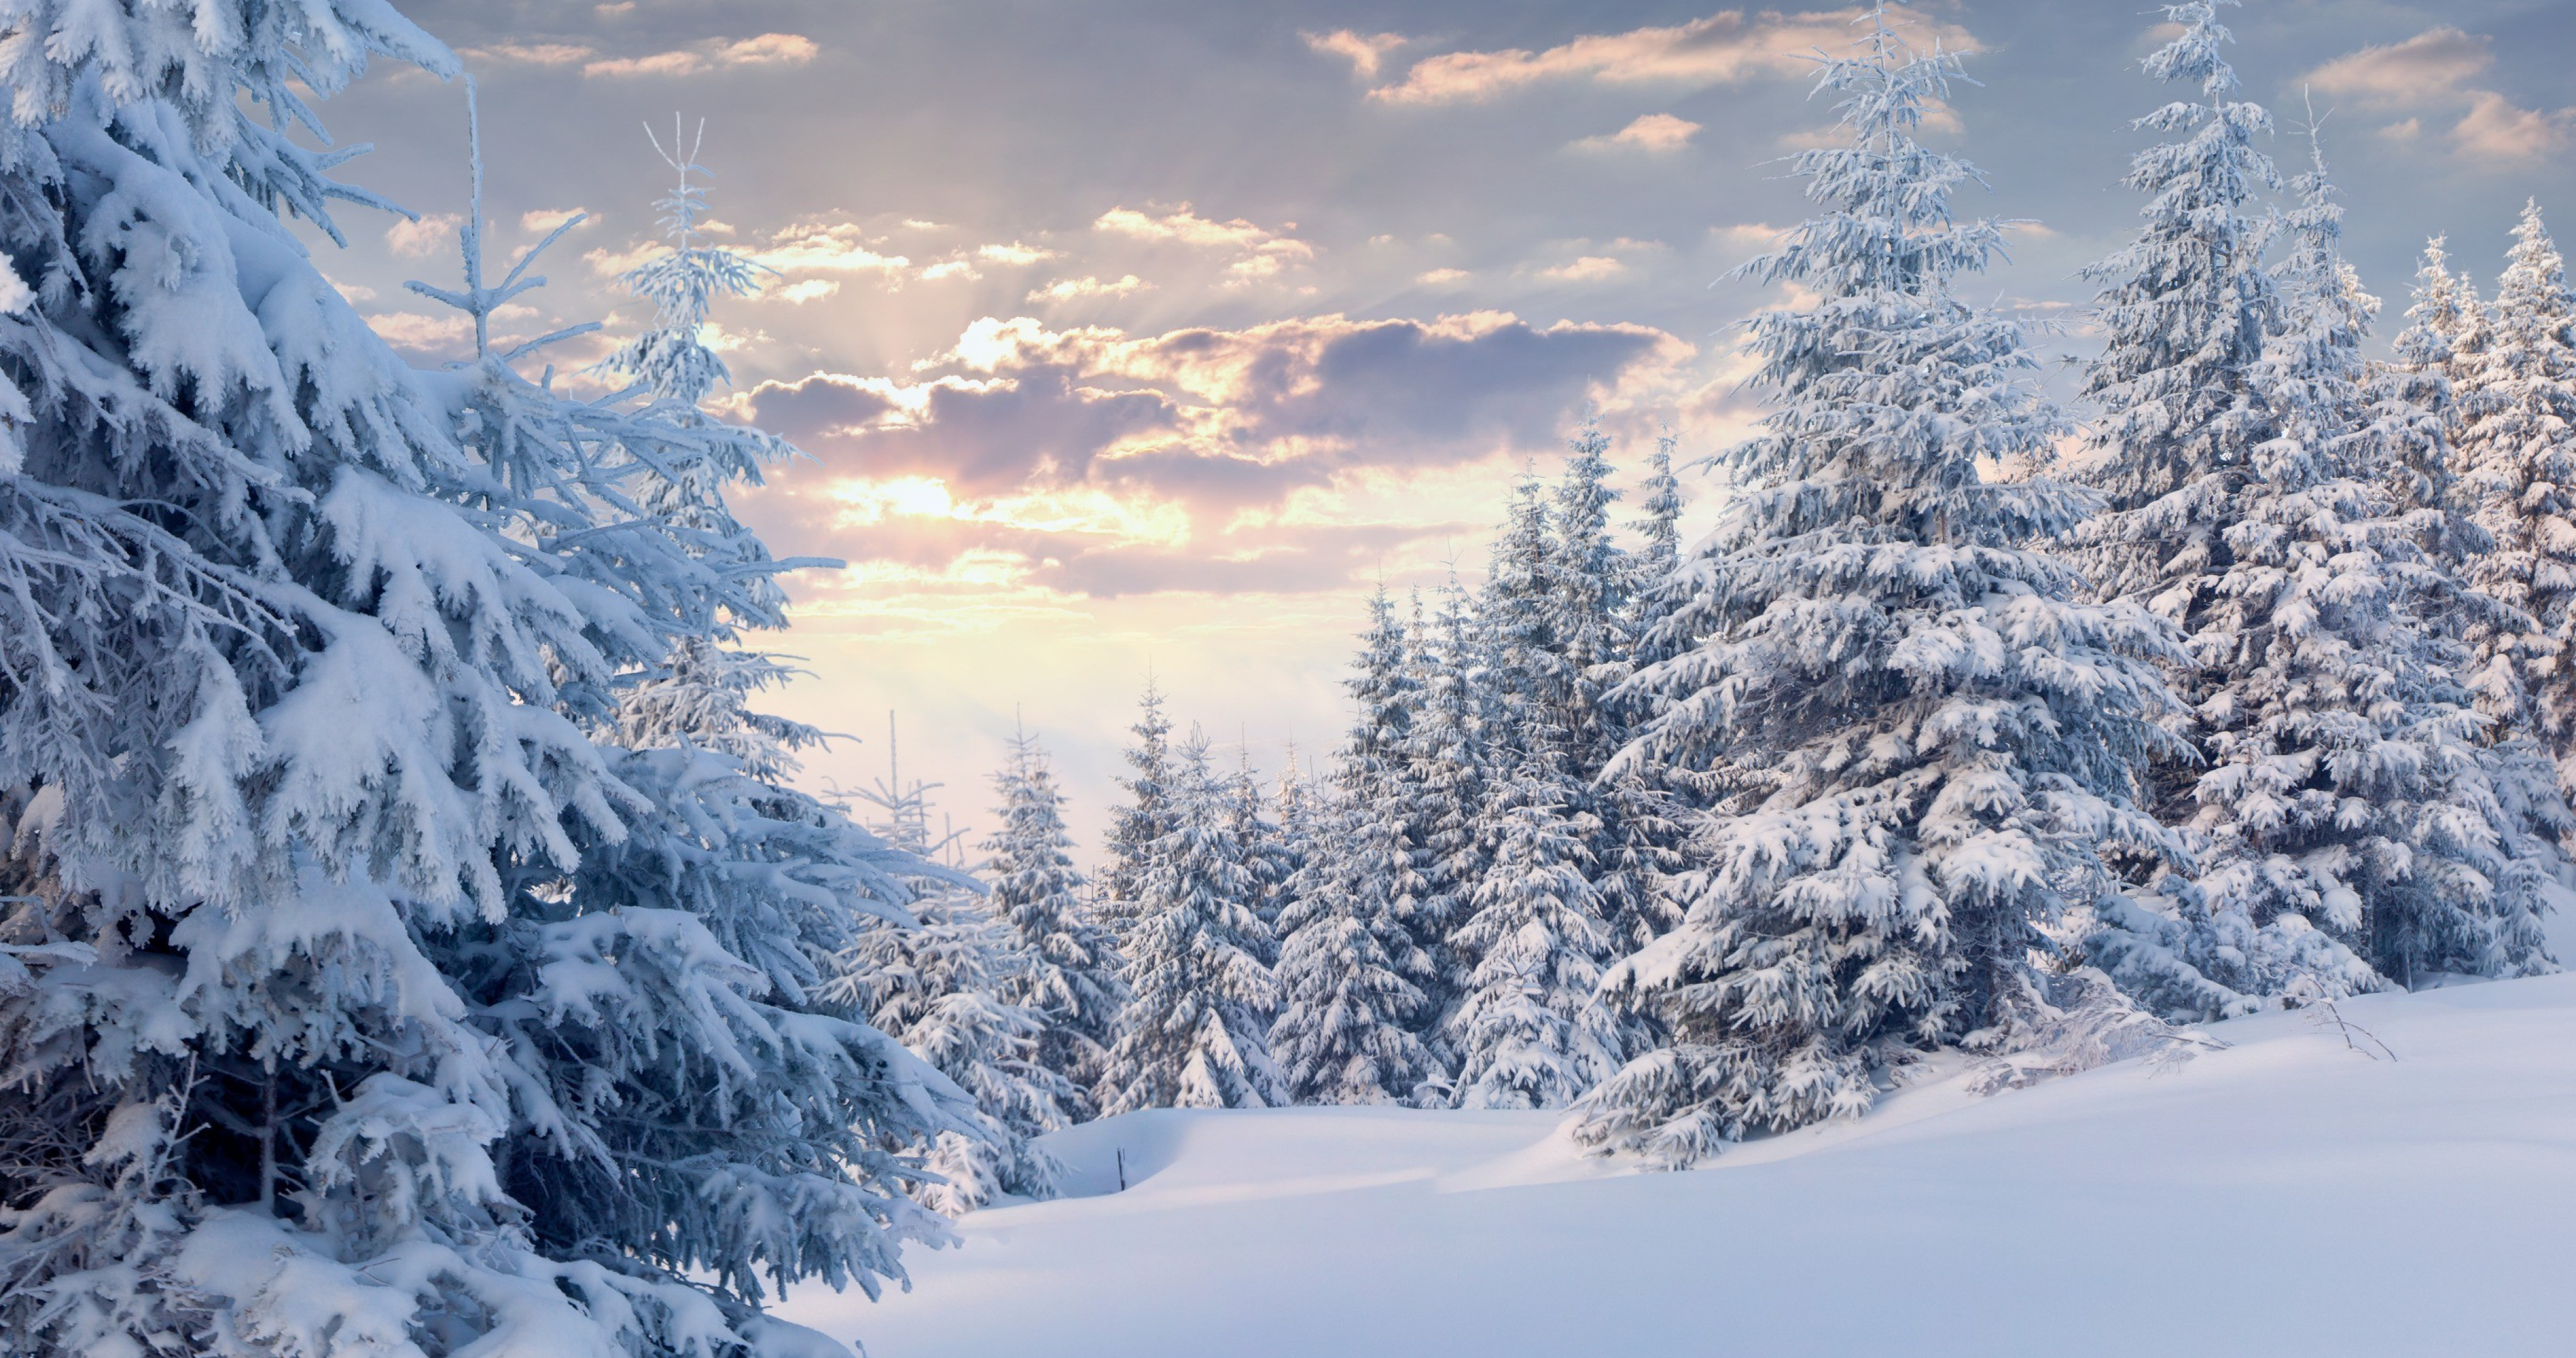 4K Snow Wallpapers High Quality | Download Free